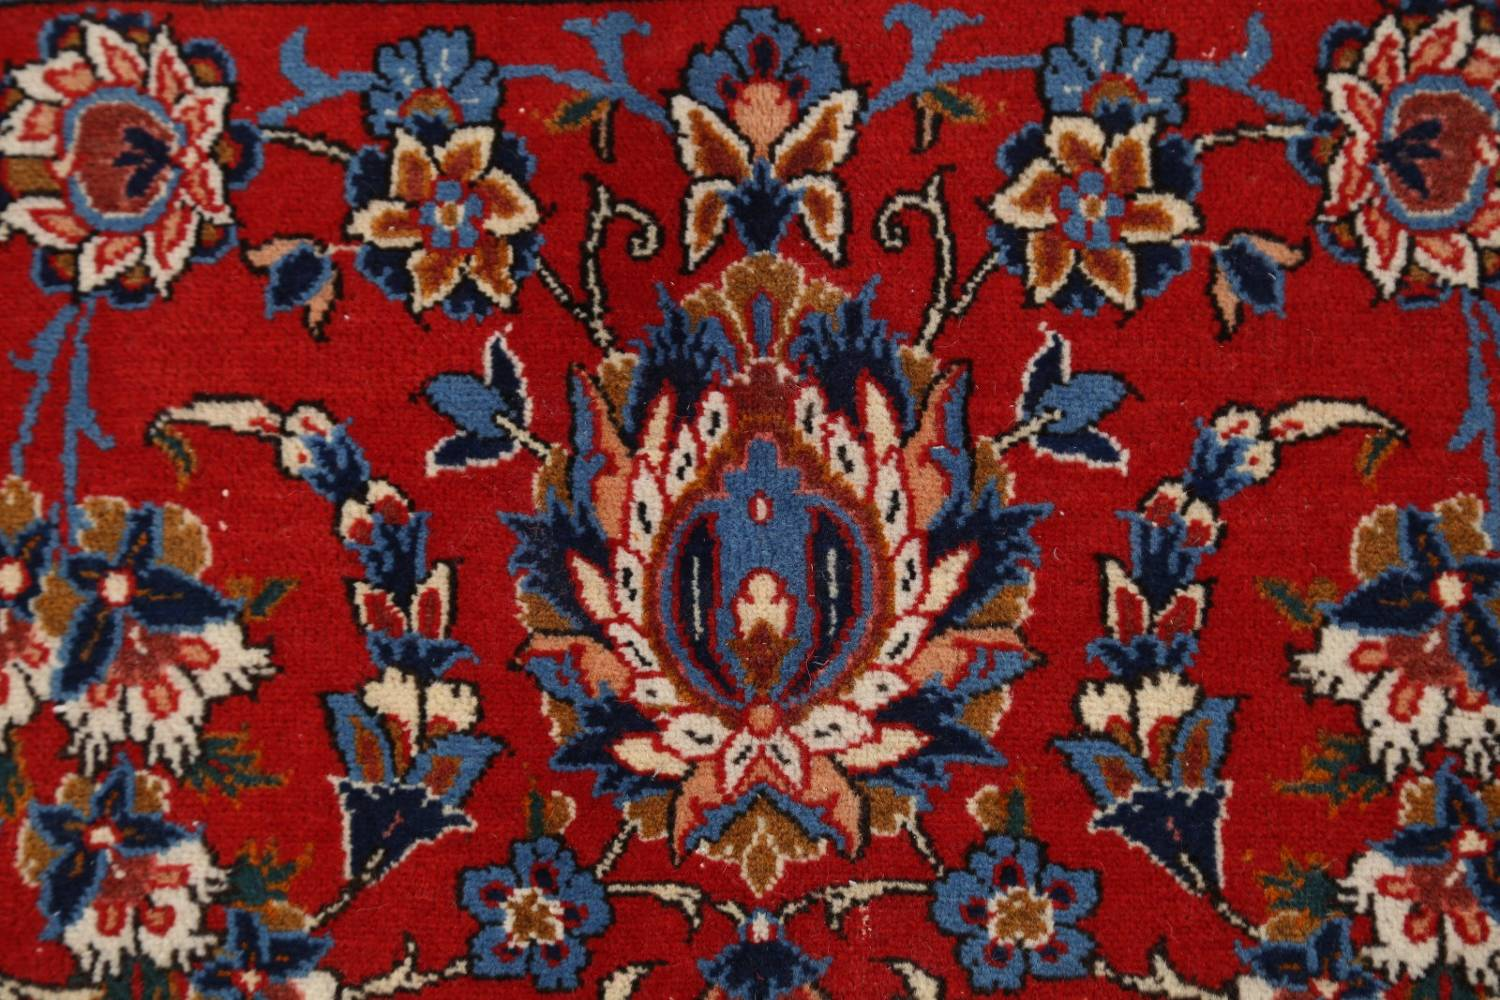 Antique Floral 10x16 Isfahan Persian Area Rug image 7